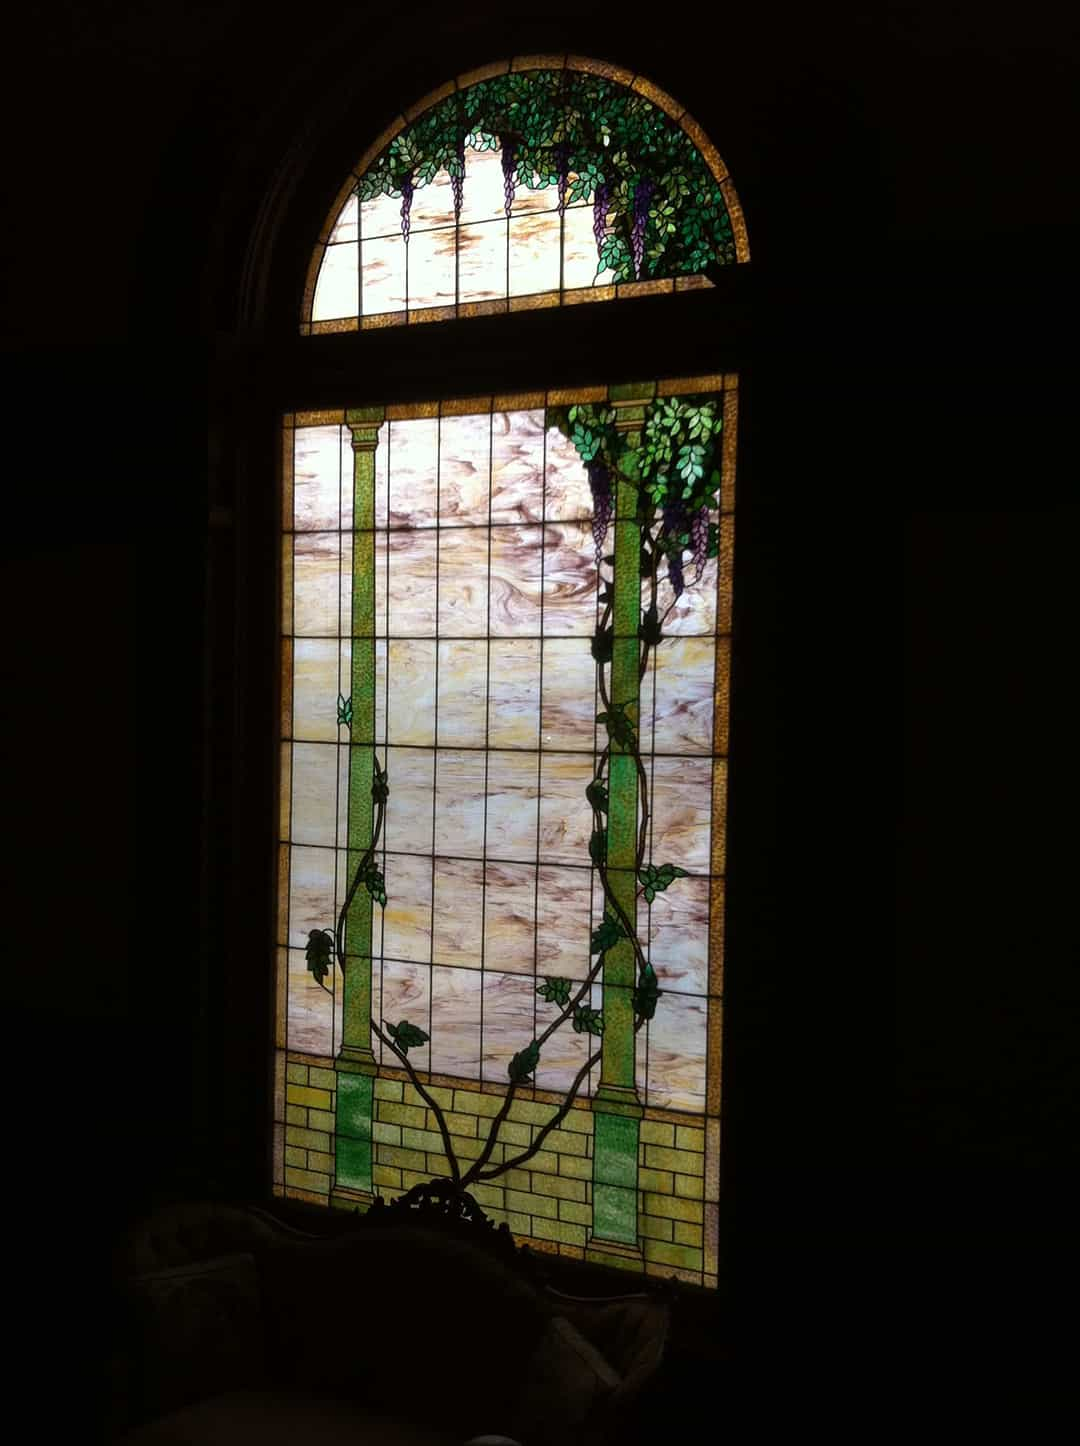 Tiffany inspired stained glass window stands over ten feet tall at the landing of the grand stair